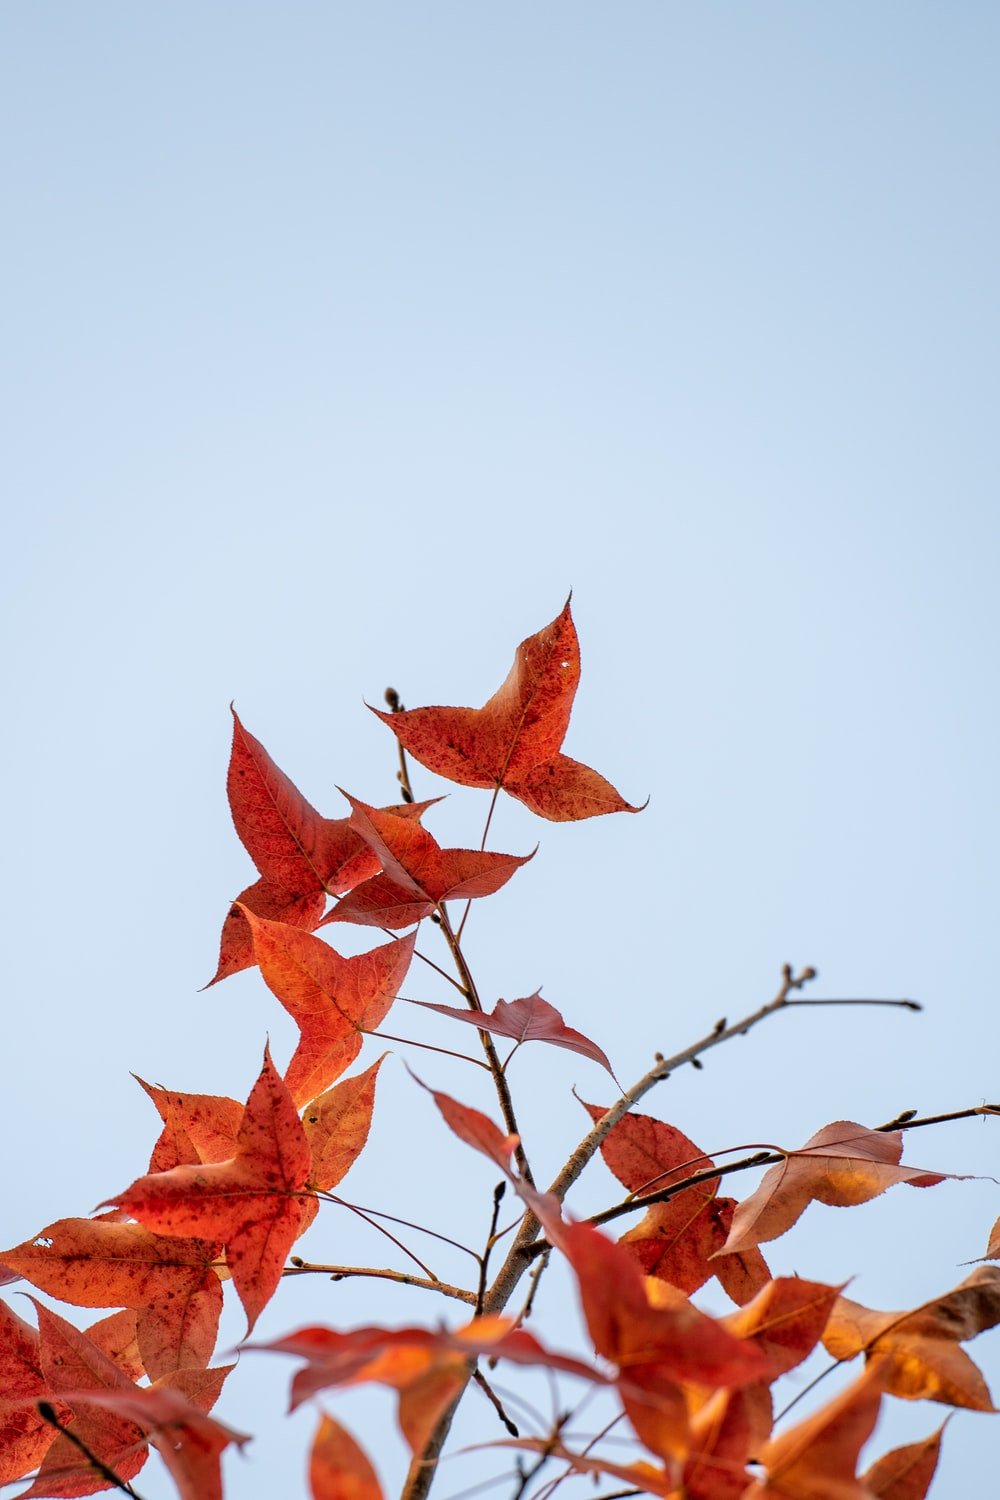 red maple leaf on brown tree branch